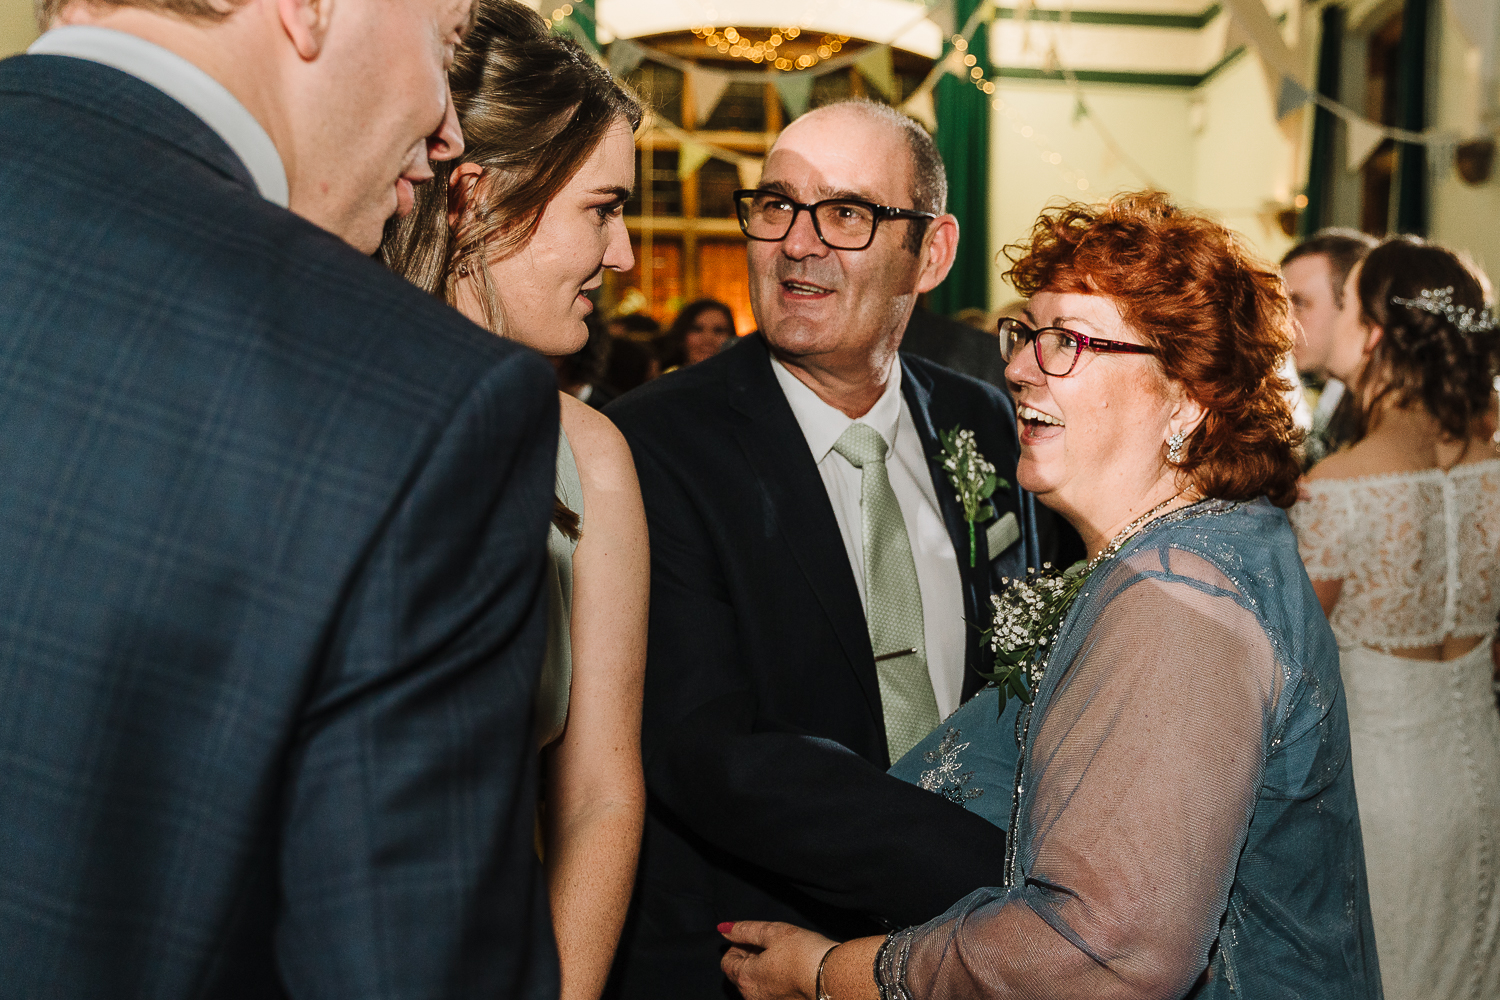 Parents of the couple dancing